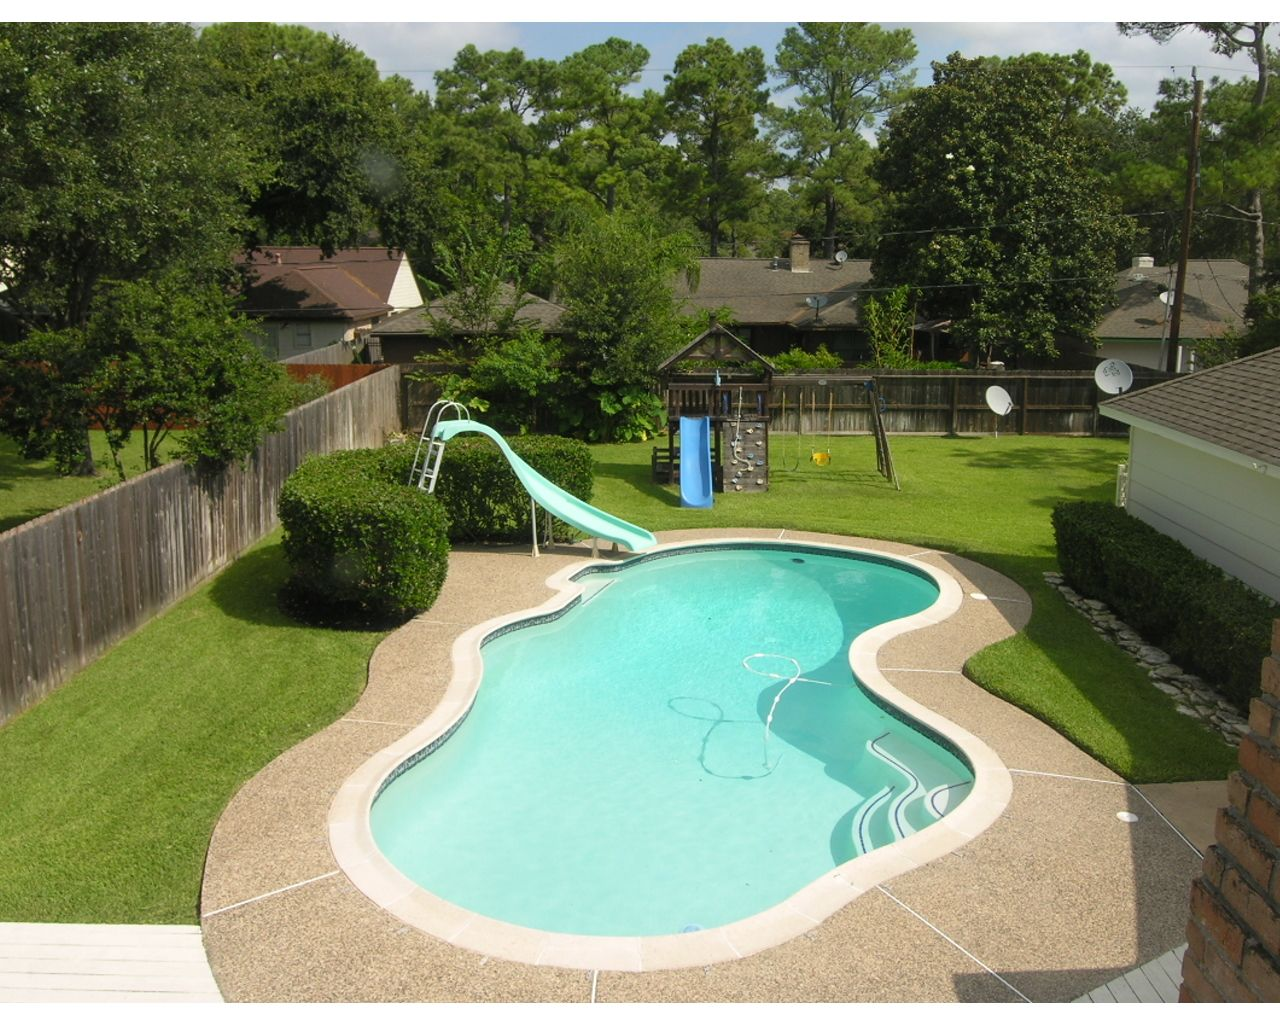 Backyard pools great view of large backyard pool but for Pool design game